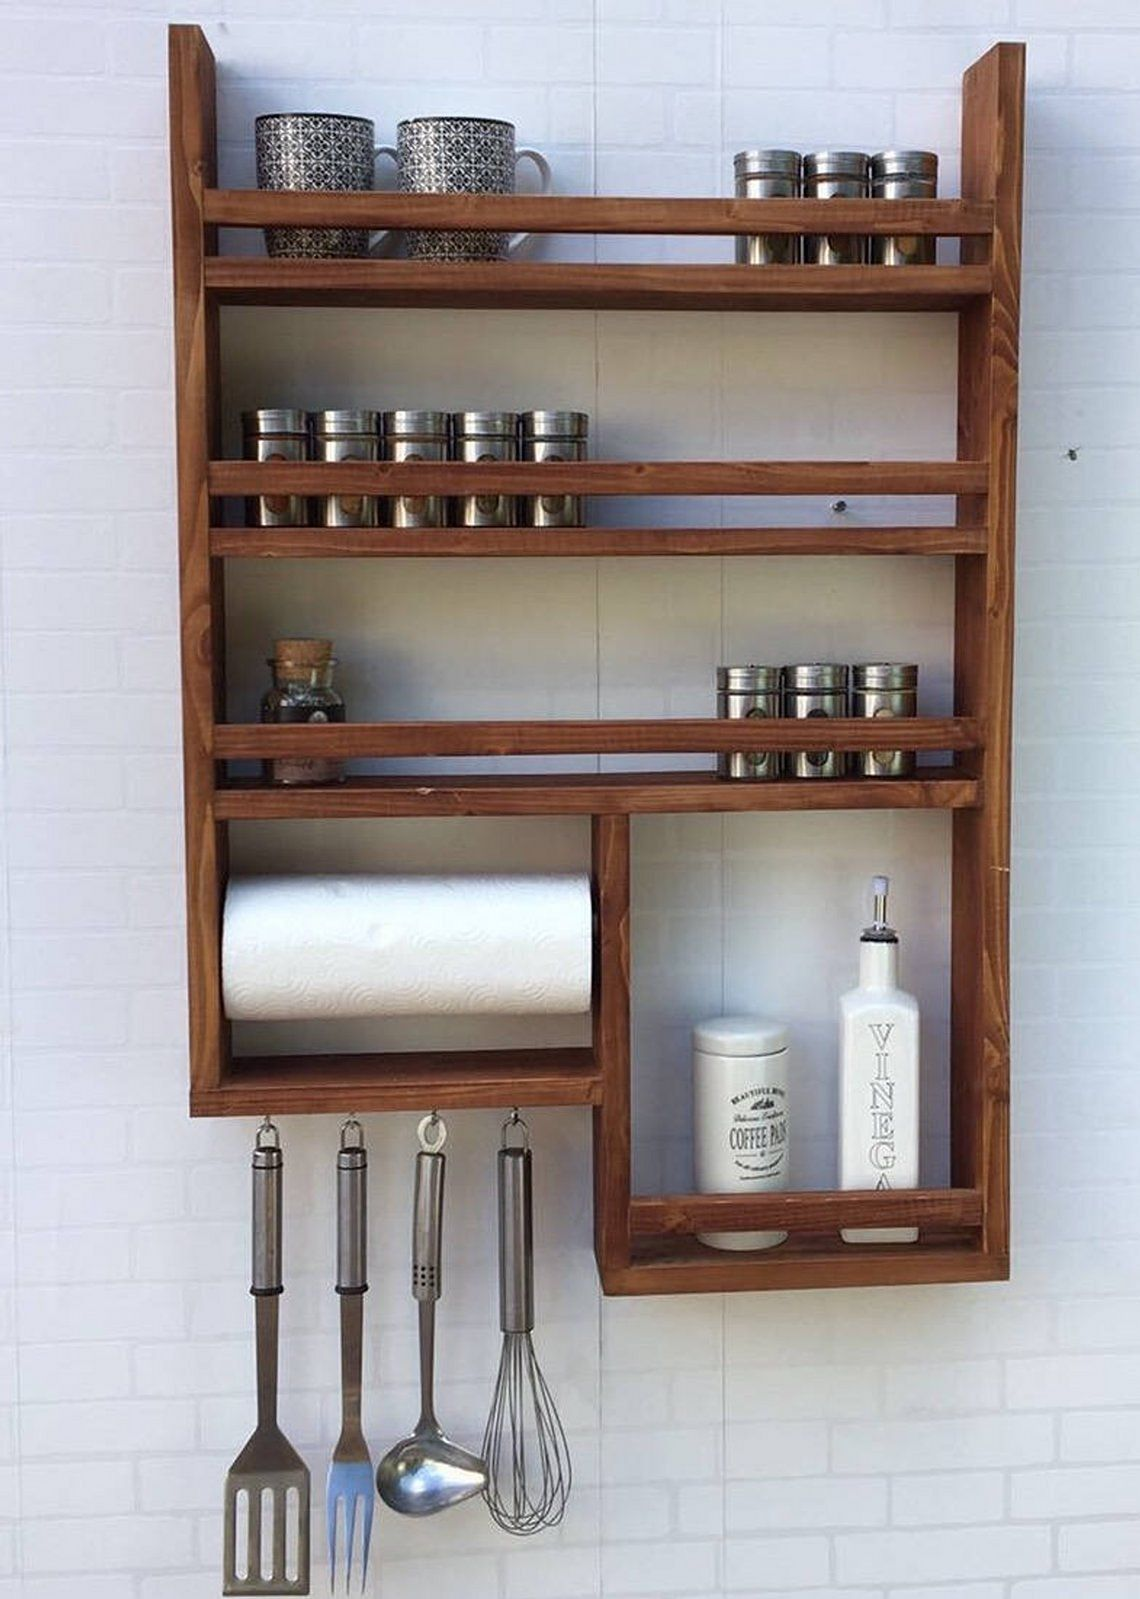 Awesome Industrial Kitchen Wood Rack Ideas You Must Try Teracee Outdoor Kitchen Countertops Diy Furniture Decor